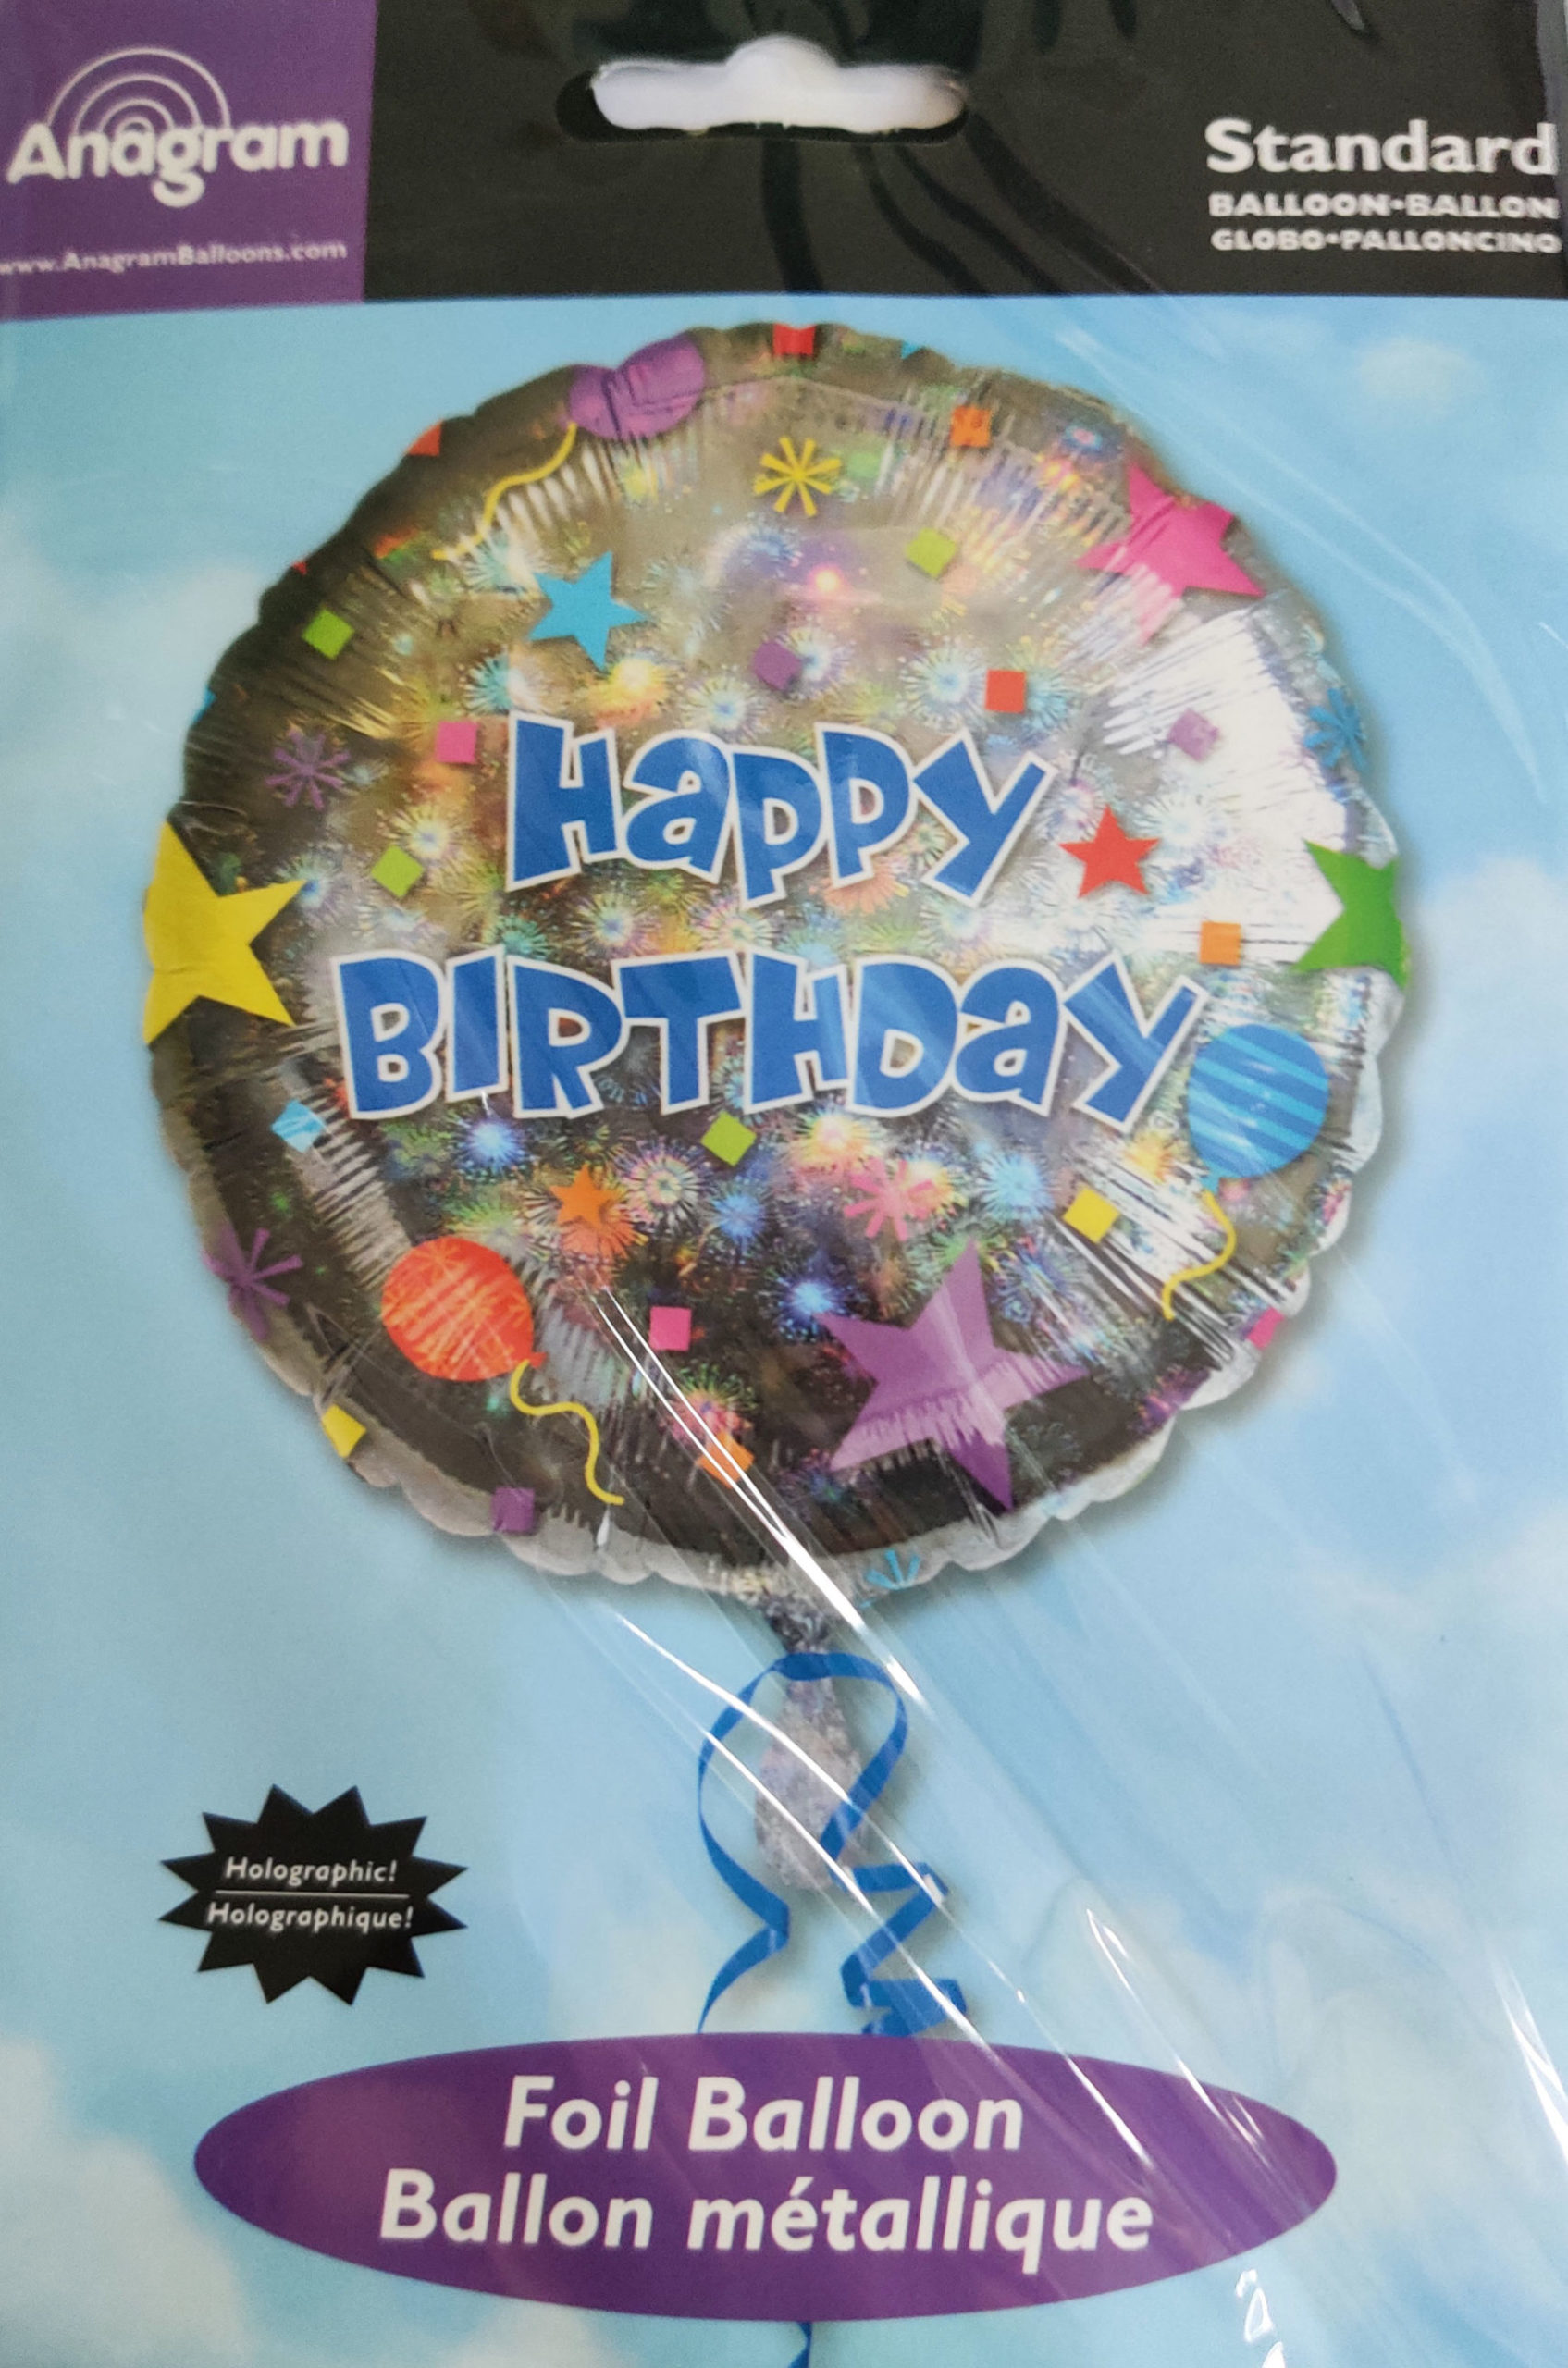 Happy Birthday 18inch Foil Balloon Party Themed 13500